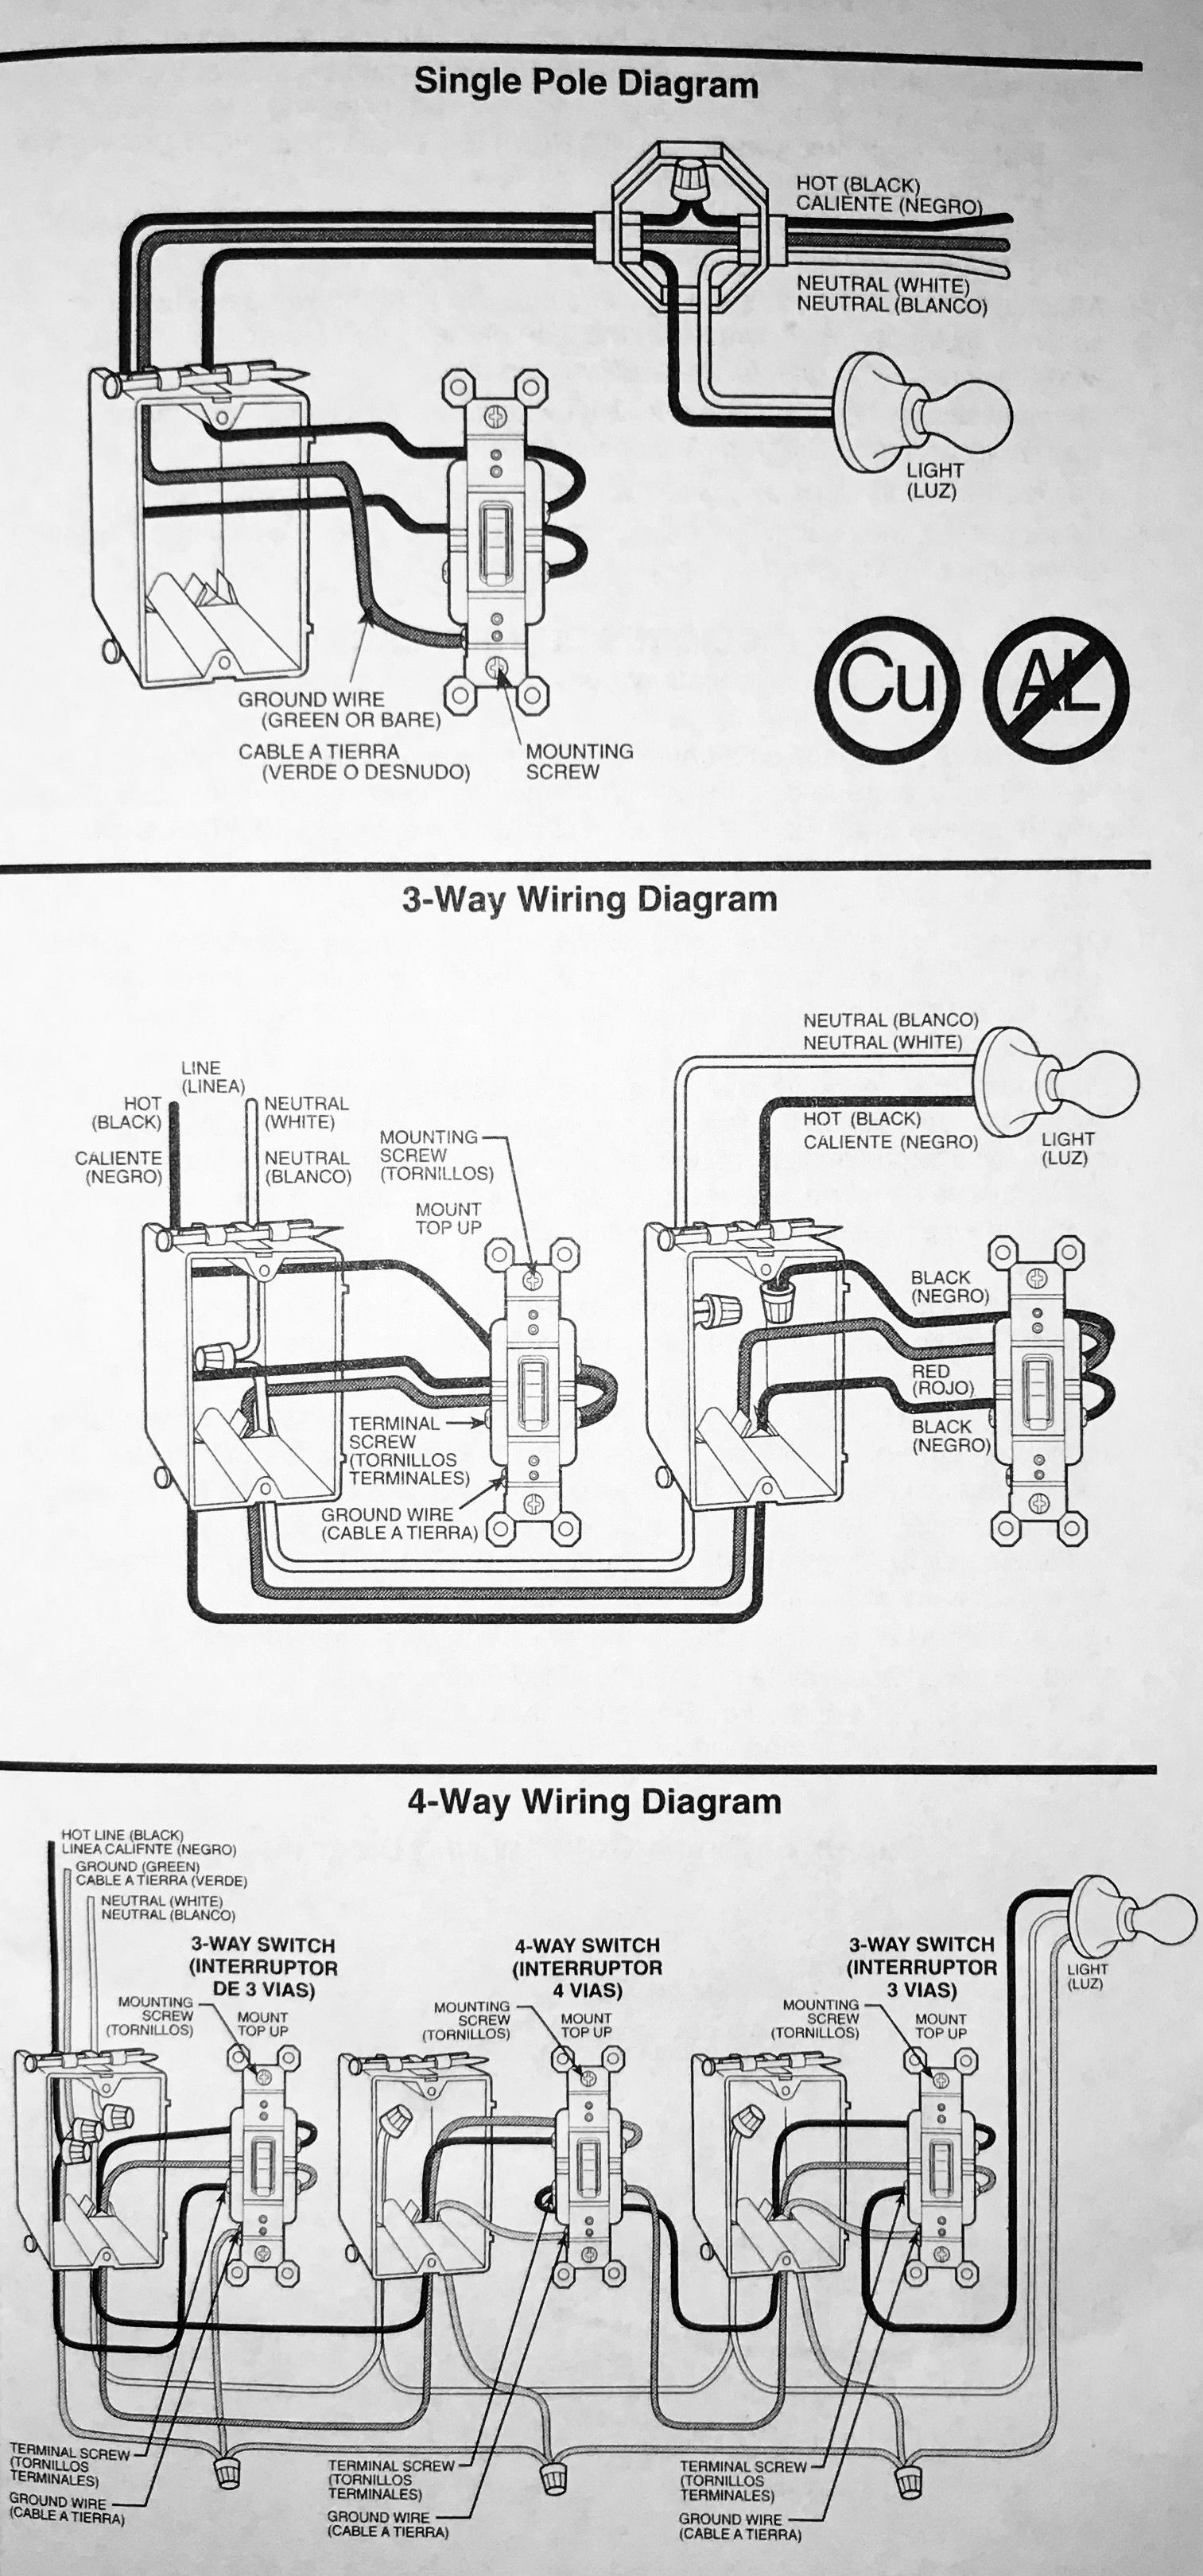 1967 porsche 912 wiring diagram wire single pole switch diagram wiring library  wire single pole switch diagram